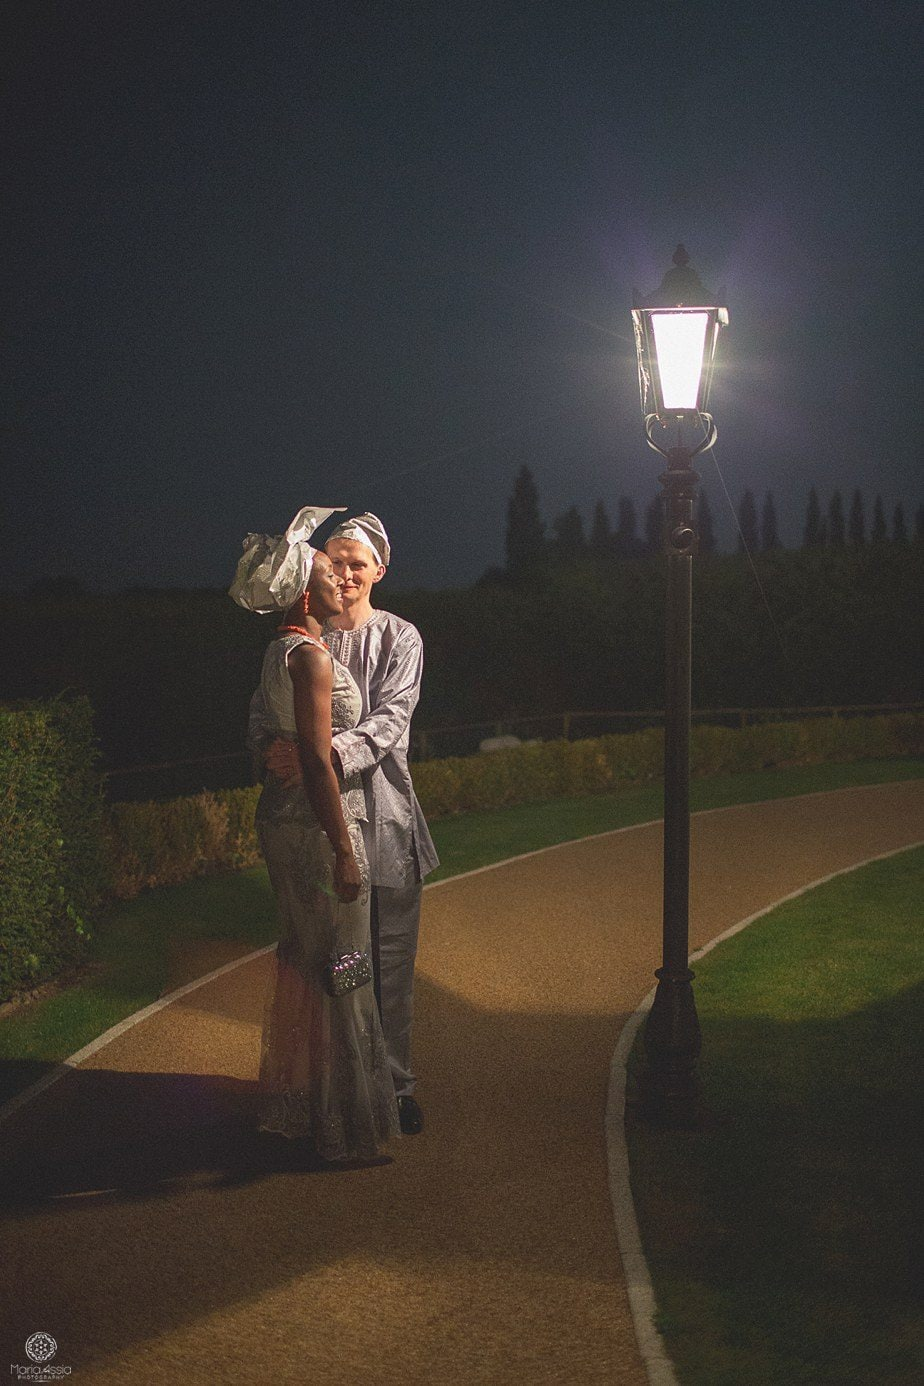 Colourful Ethnic wedding couple standing under a lamppost nightshot using creative lighting at Froyle Park